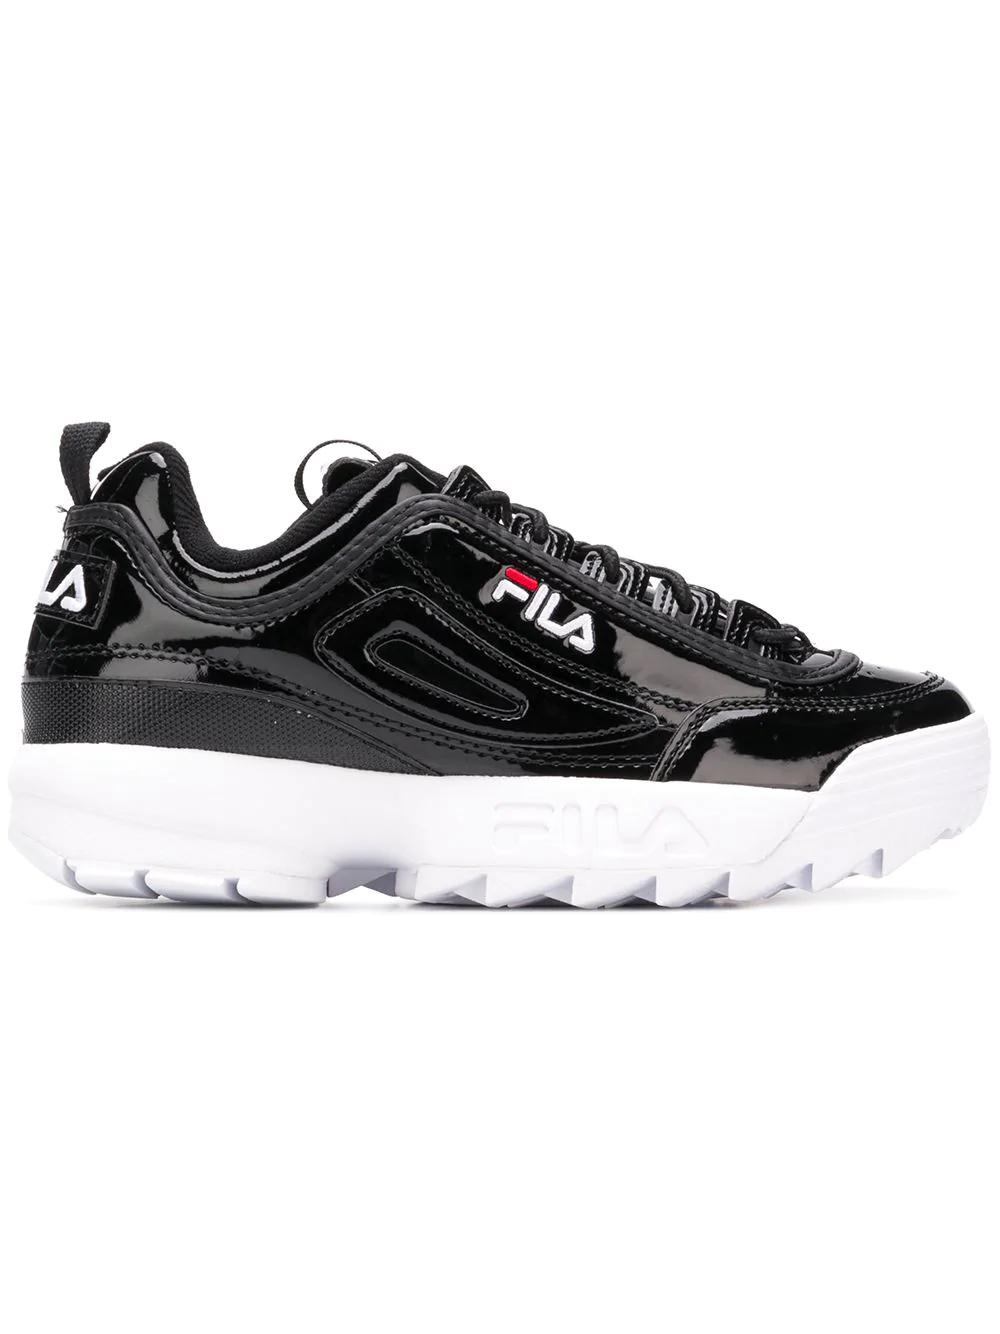 253c5a0b7120 Fila Women s Disruptor Ii Round Toe Patent Leather Platform Dad Sneaker In  Black